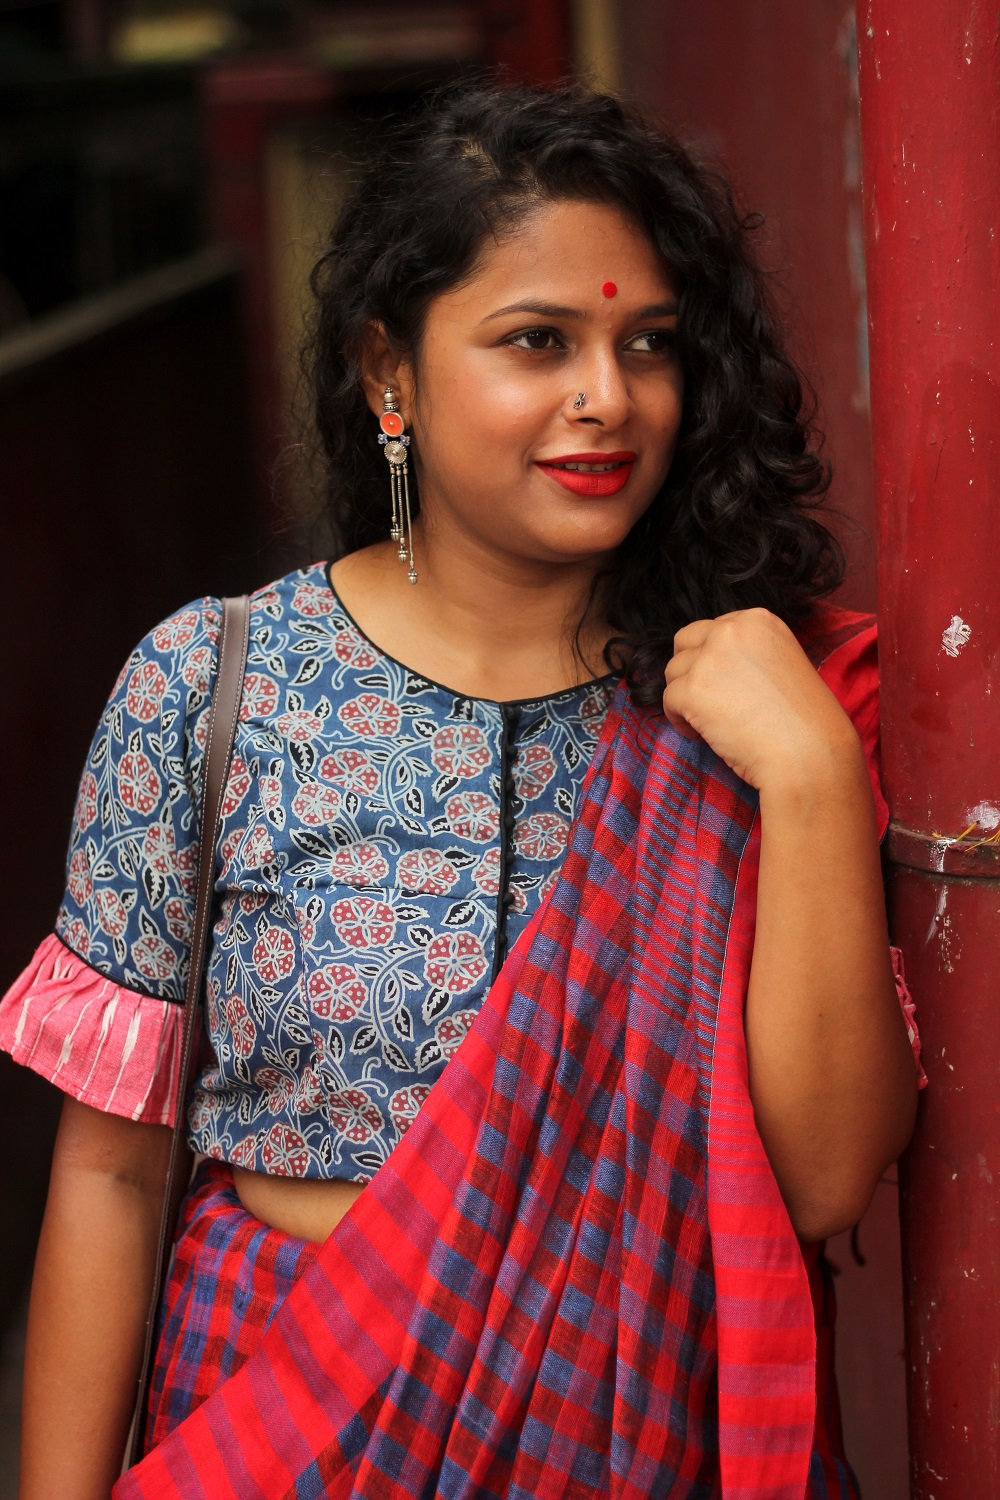 What to wear during Durga Puja - Ashtami Fashion - Durga Puja Lookbook - Festive Lookbook - Live Laugh Dressup - Indian Fashion Blogger